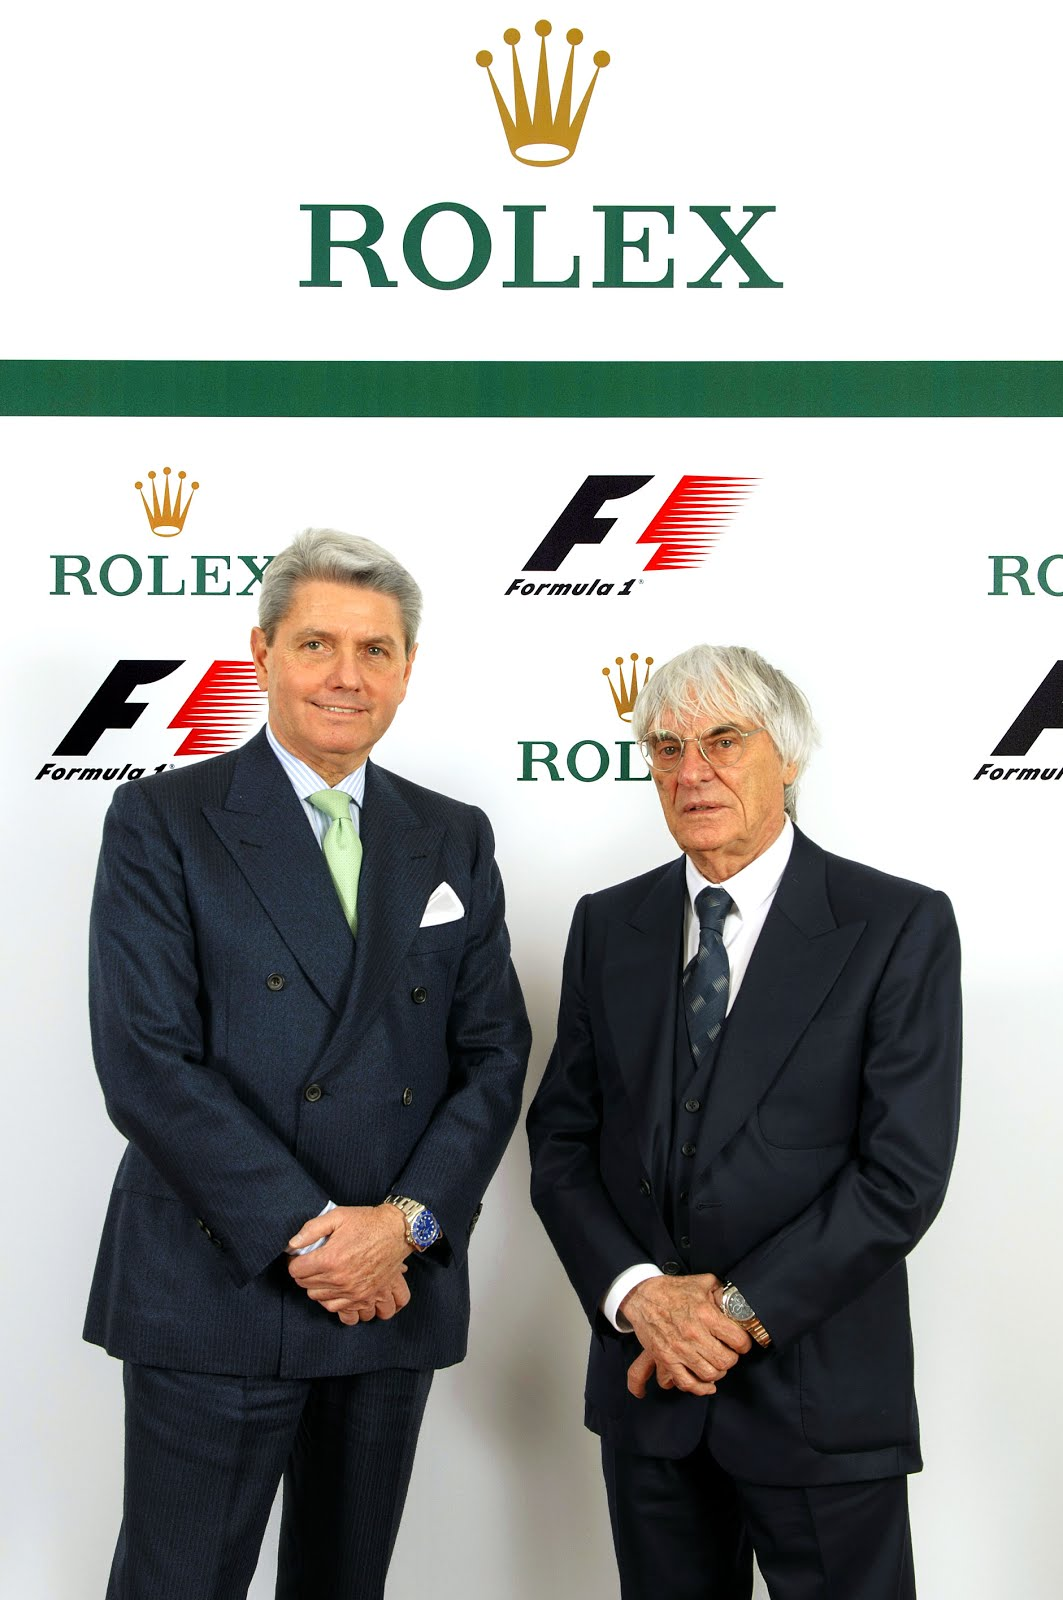 Mr-Gian-Riccardo-Marini,-Chief-Executive-Officer-of-Rolex-SA-;-Mr-Bernie-Ecclestone,-CEO-of-the-Formula-One-group